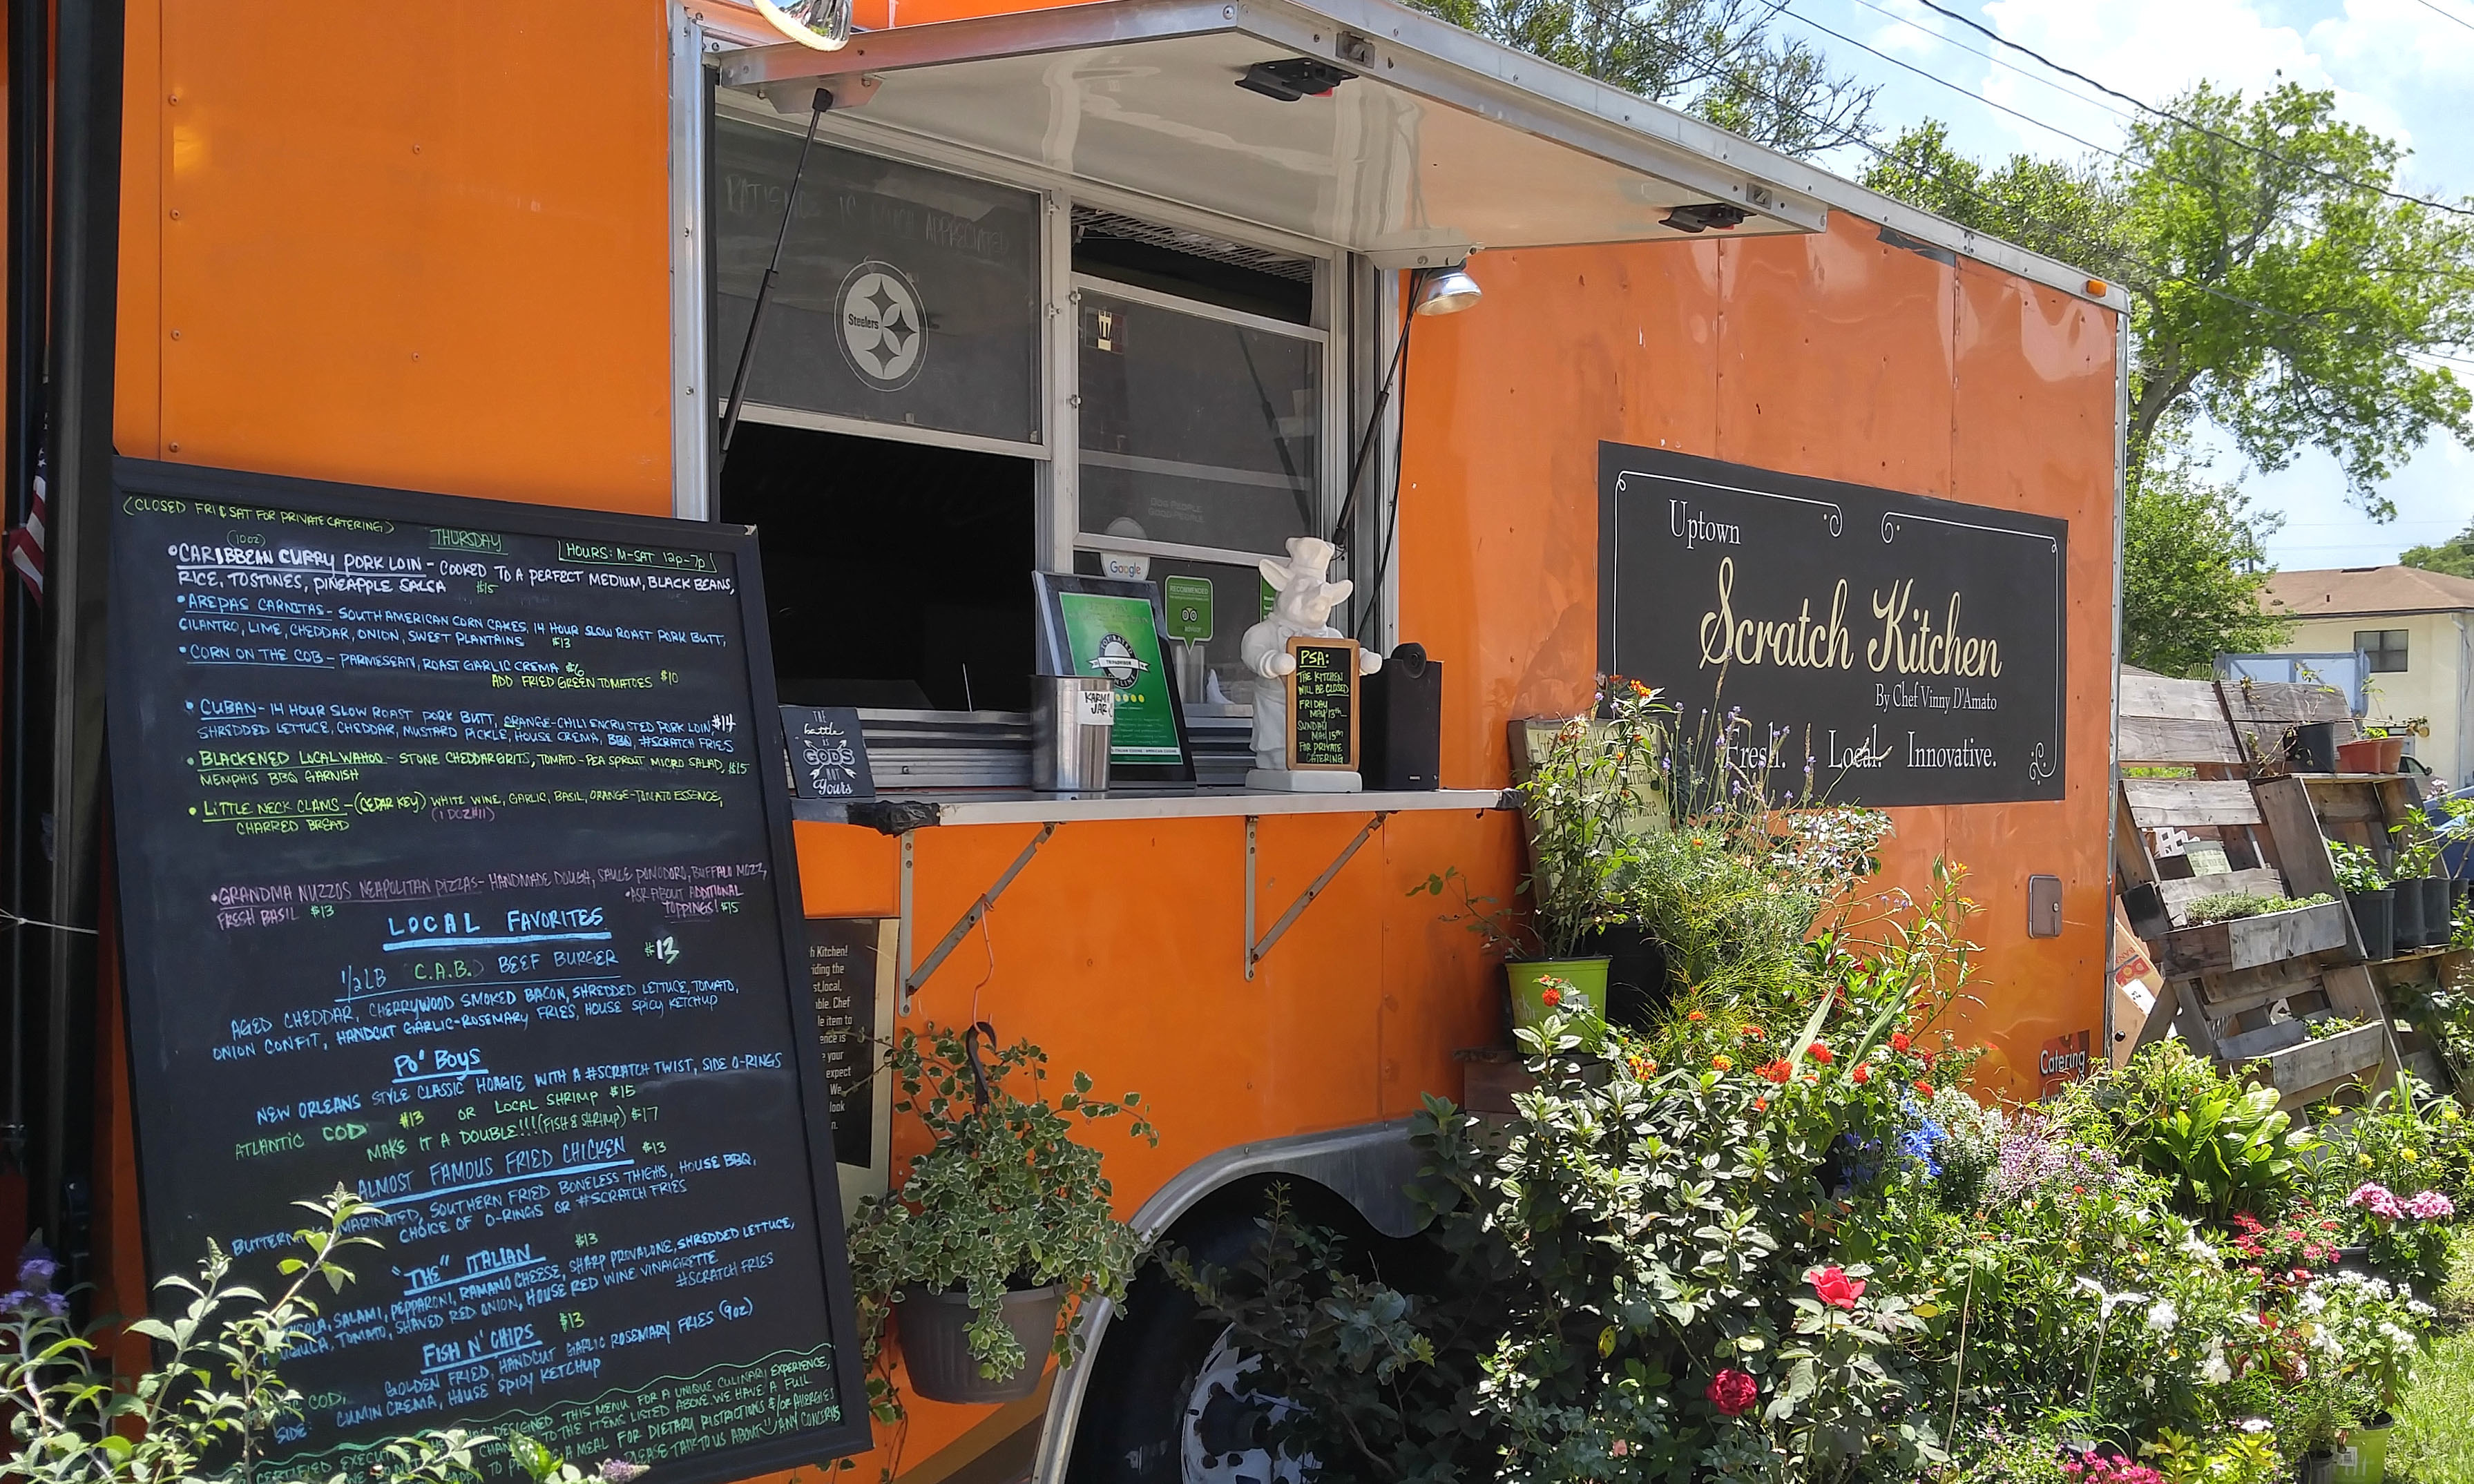 Scratch Kitchen uptown scratch kitchen food truck | visit st. augustine